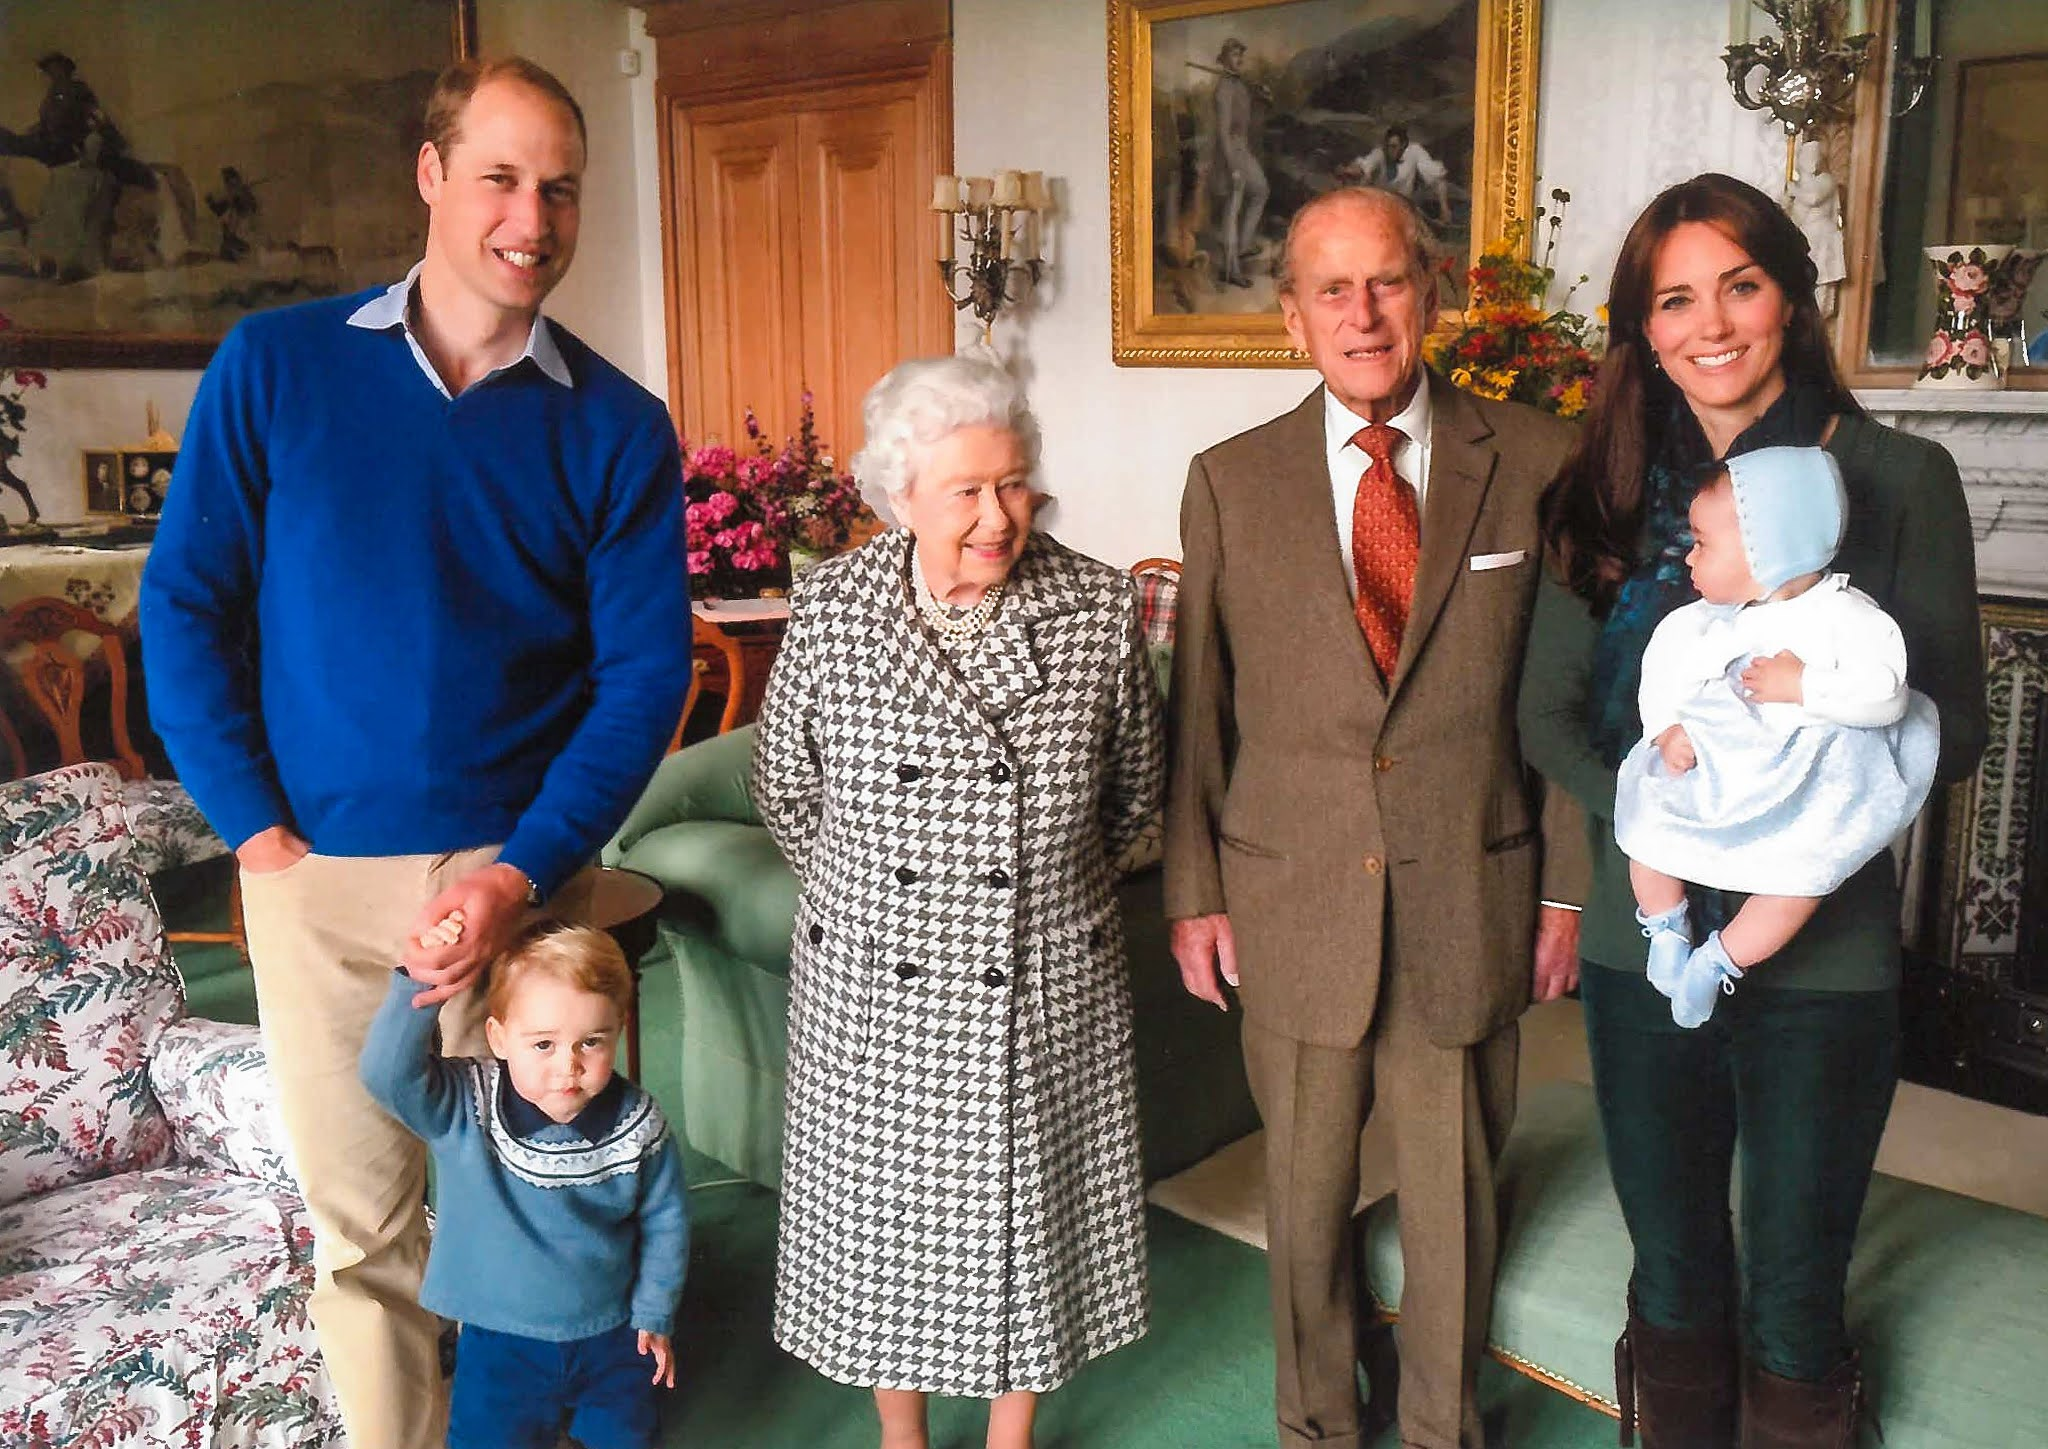 The Duke and Duchess of Cambridge, Prince George and Princess Charlotte with The Queen and The Prince Philip at Balmoral Castle